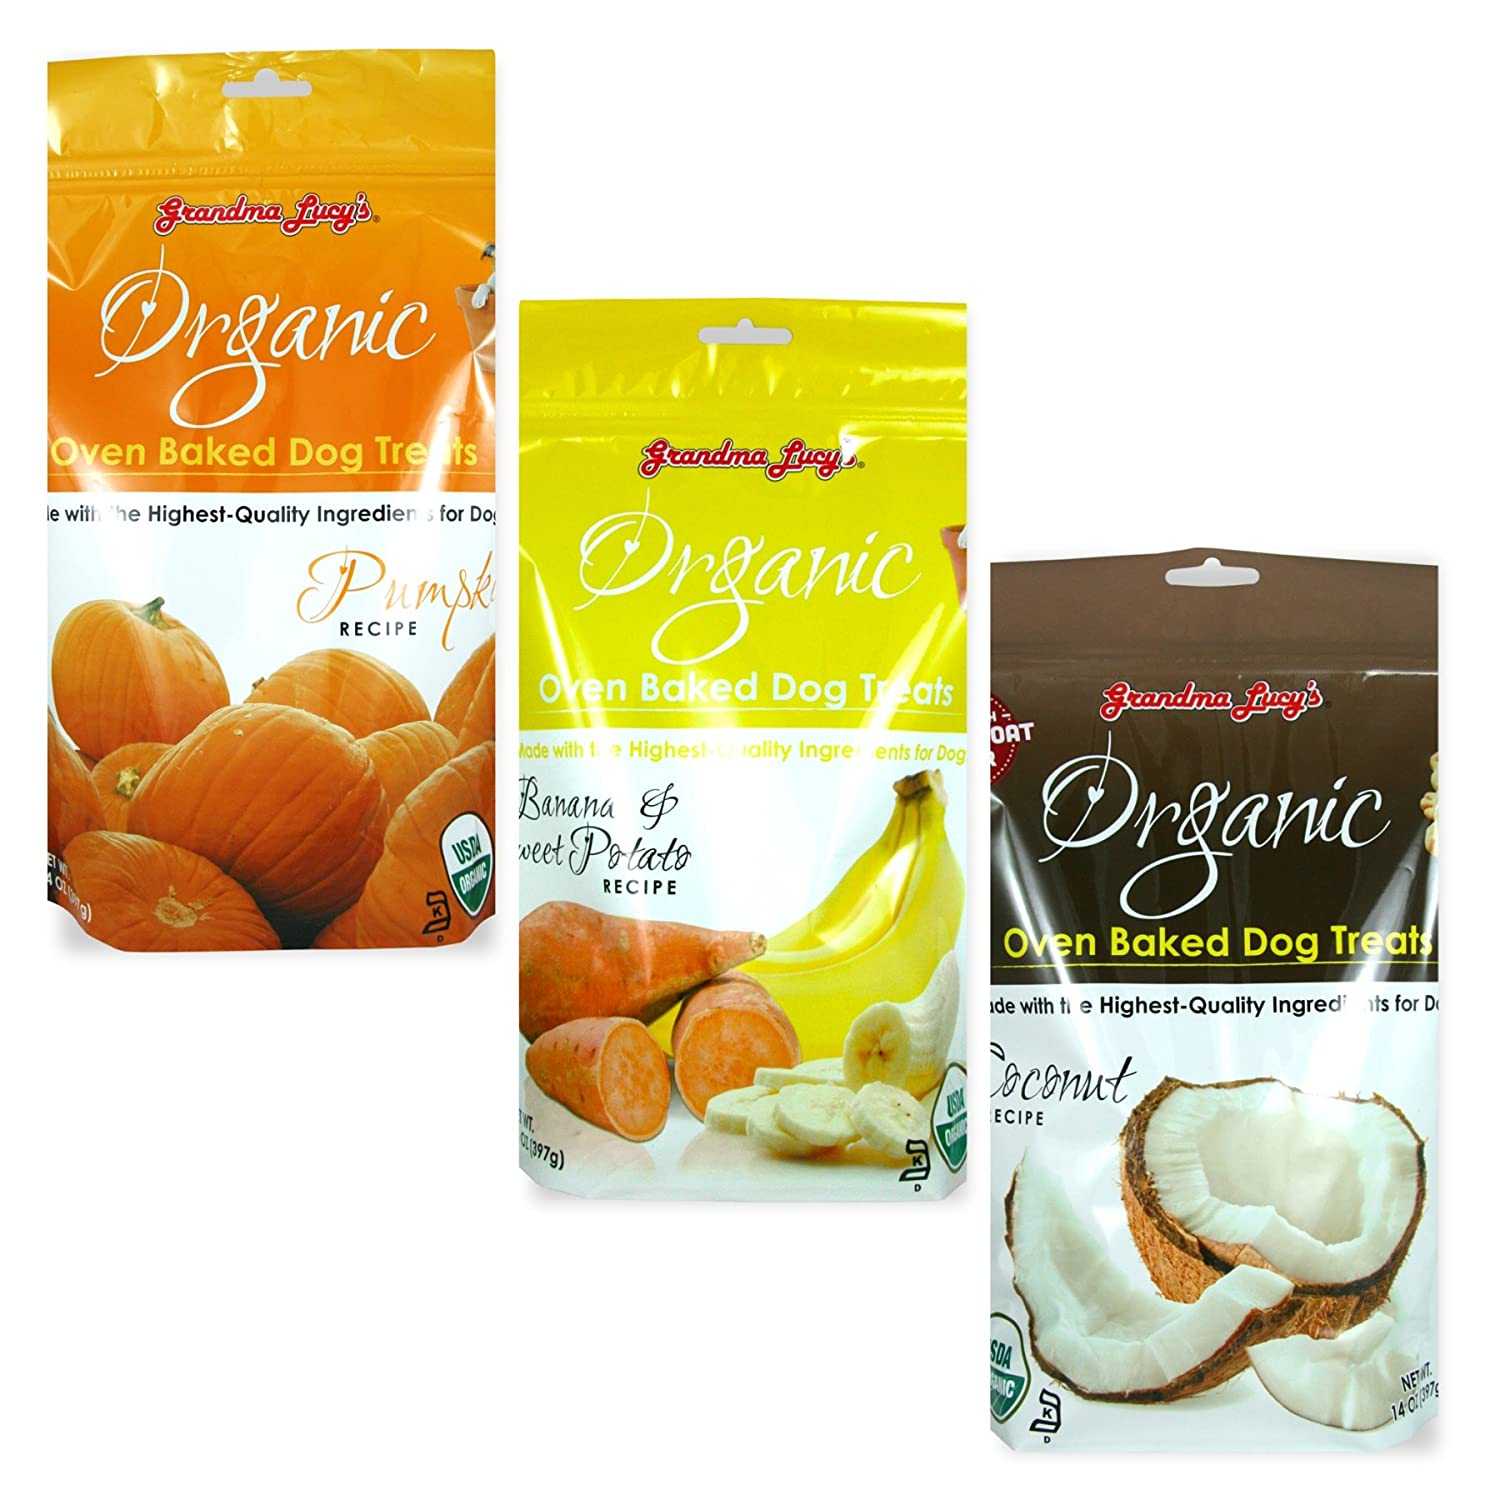 Grandma Lucy's Organic Baked Dog Treats Dog Snacks, Mixed 3 Packs x 14 Oz - Pumpkin, Banana, Coconut, Fast Free Delivery, by Just Jak's Pet Market